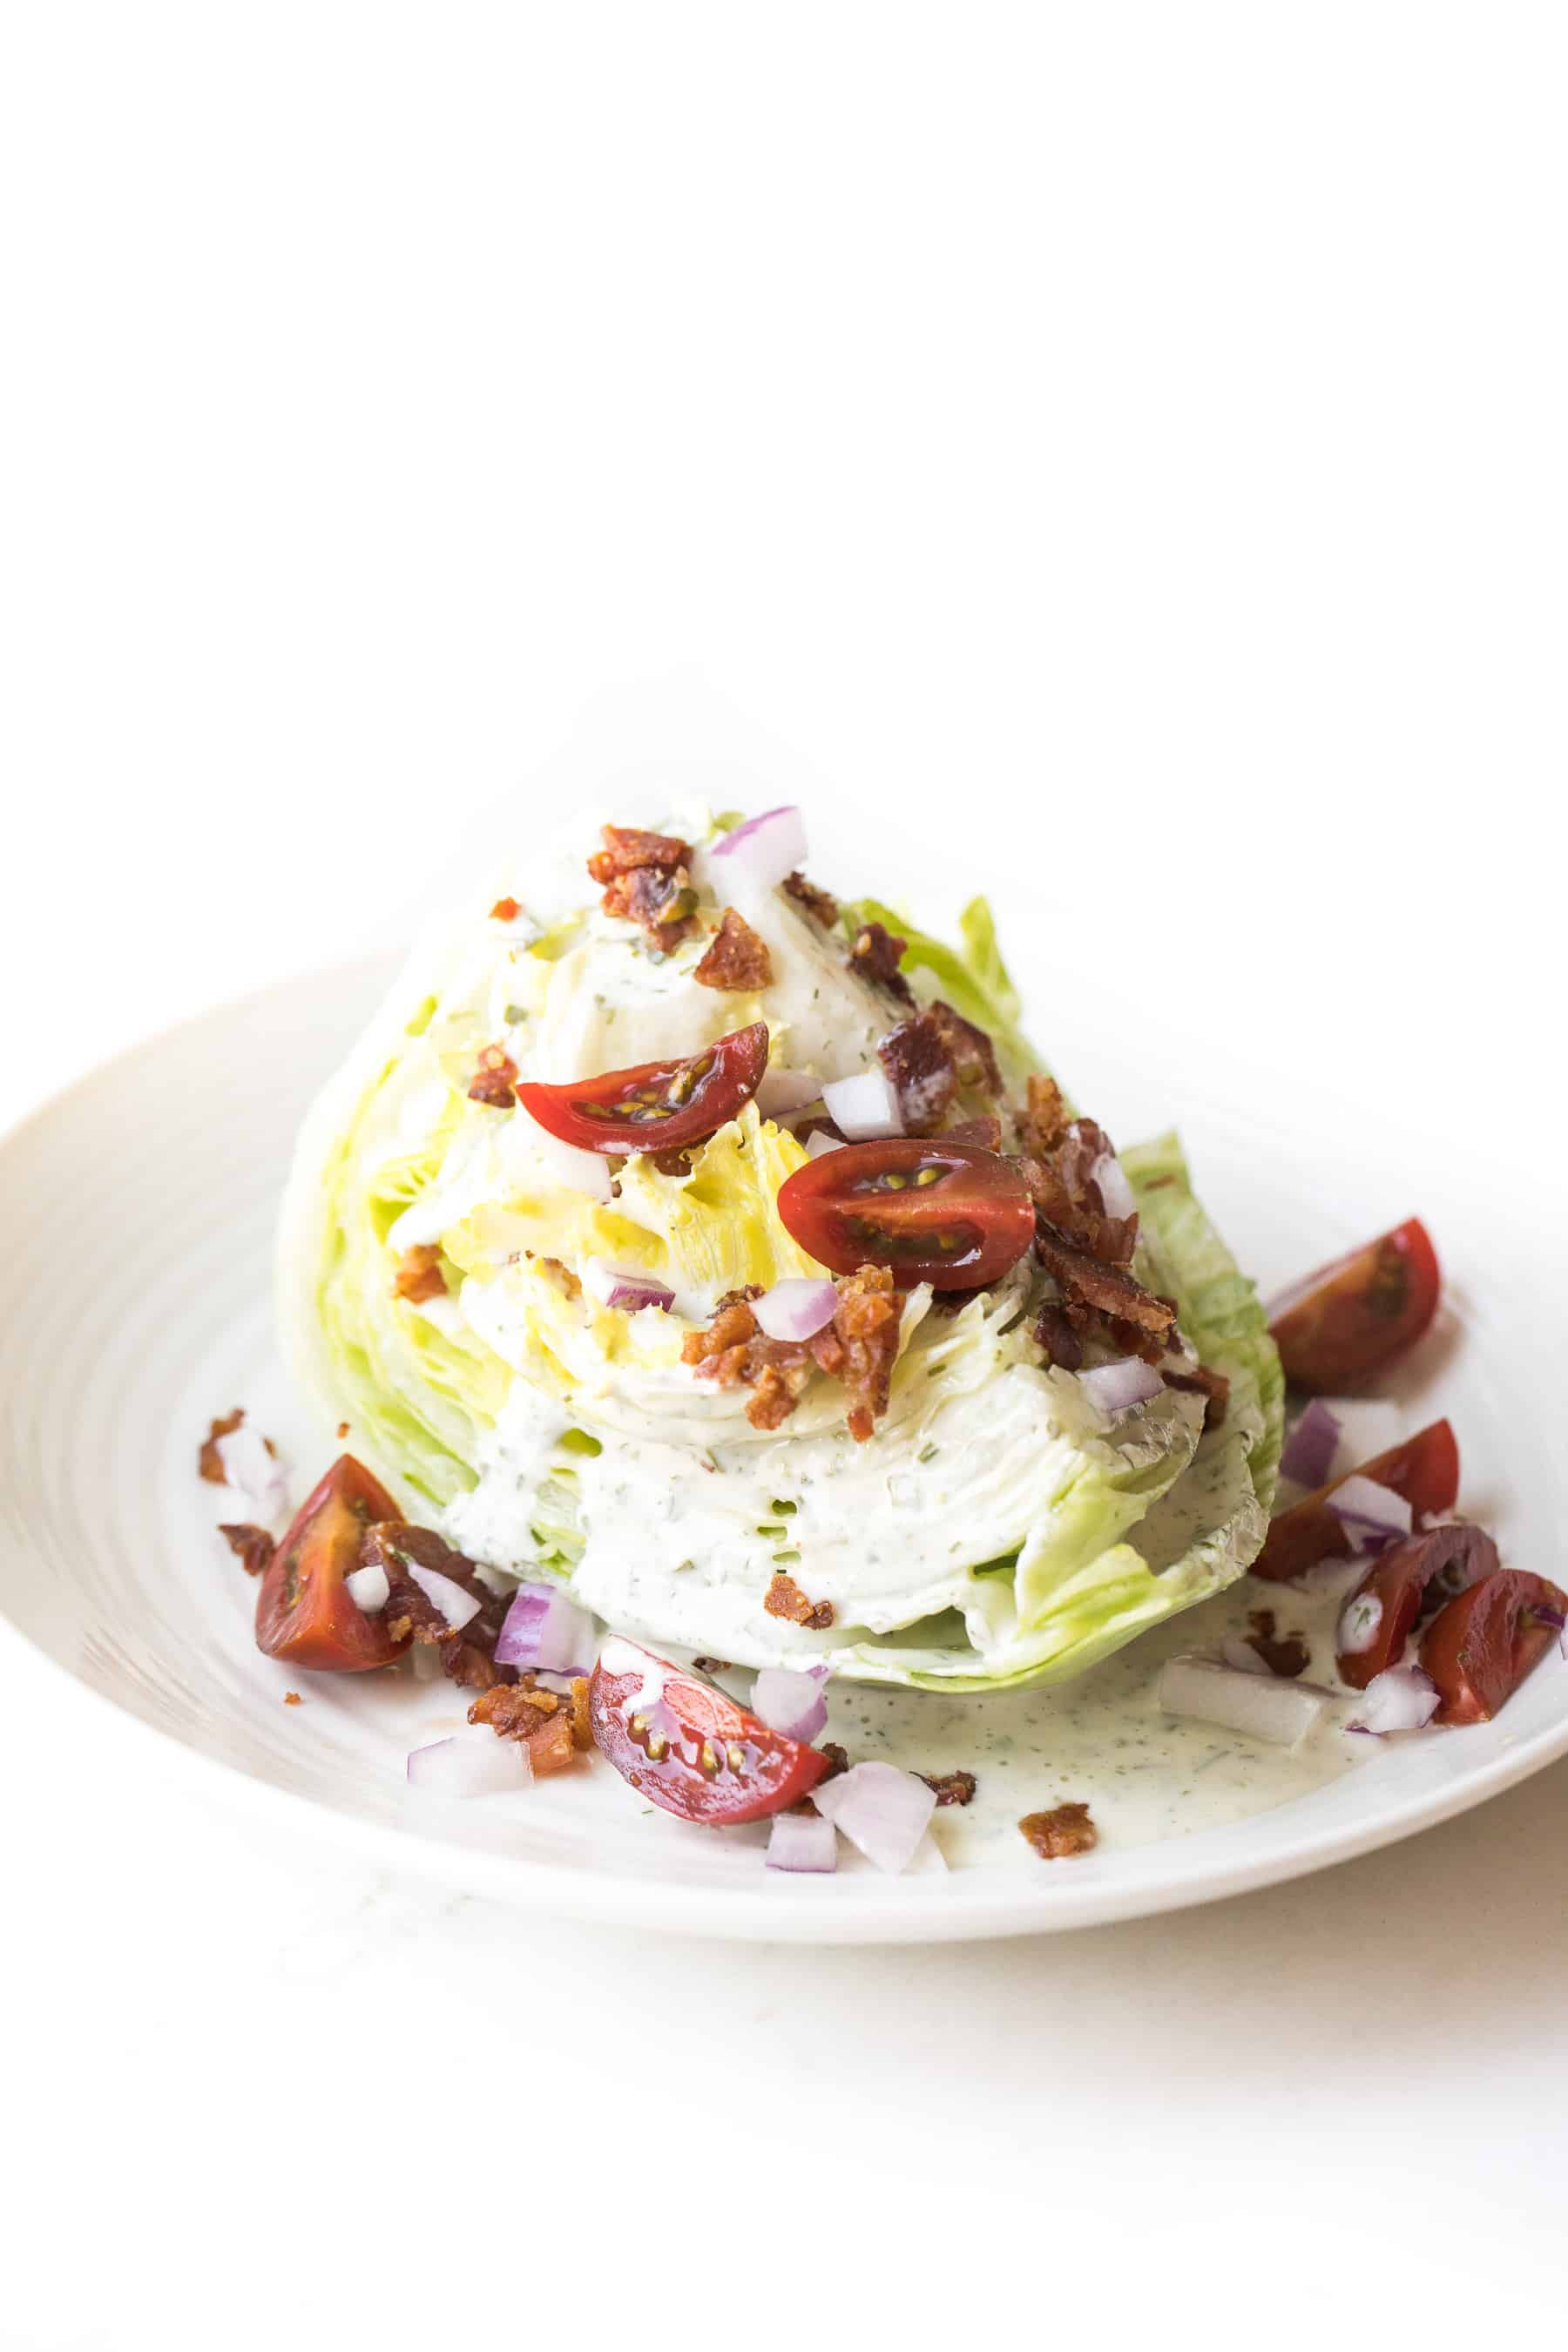 wedge salad topped with dressing, bacon, tomatoes and onion on a white plate and white background